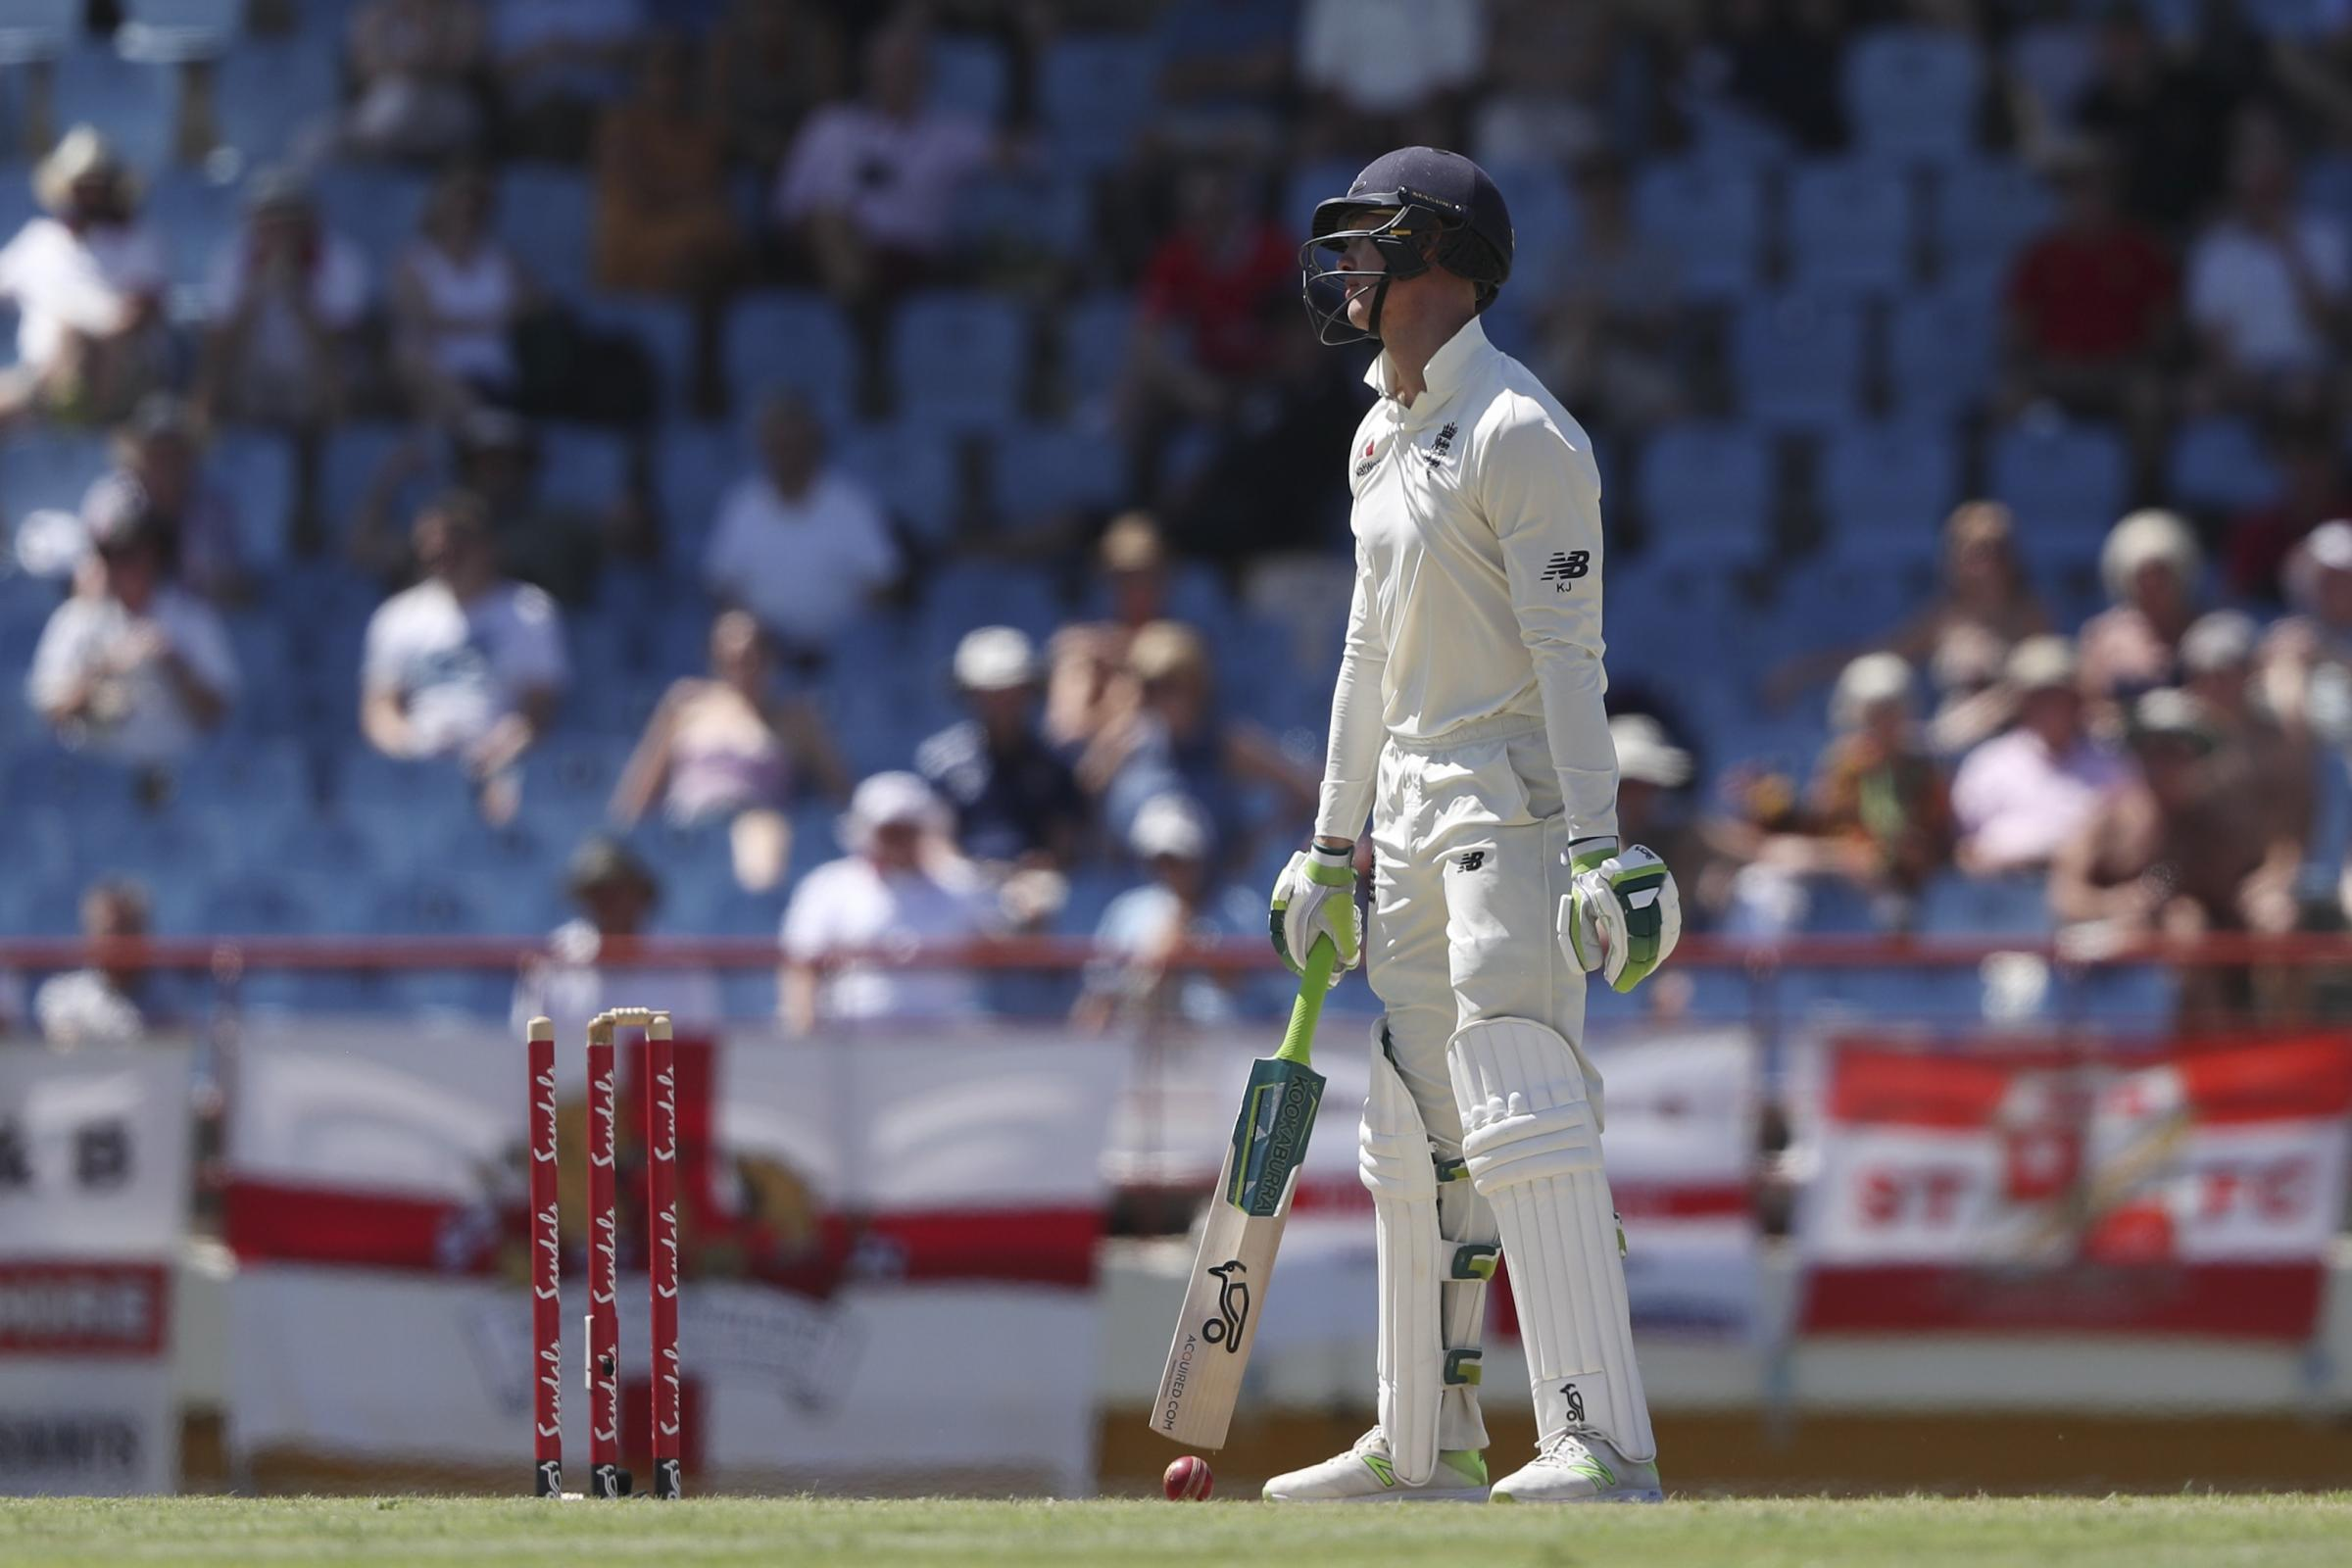 Keaton Jennings looks on after being bowled by West Indies' Alzarri Joseph